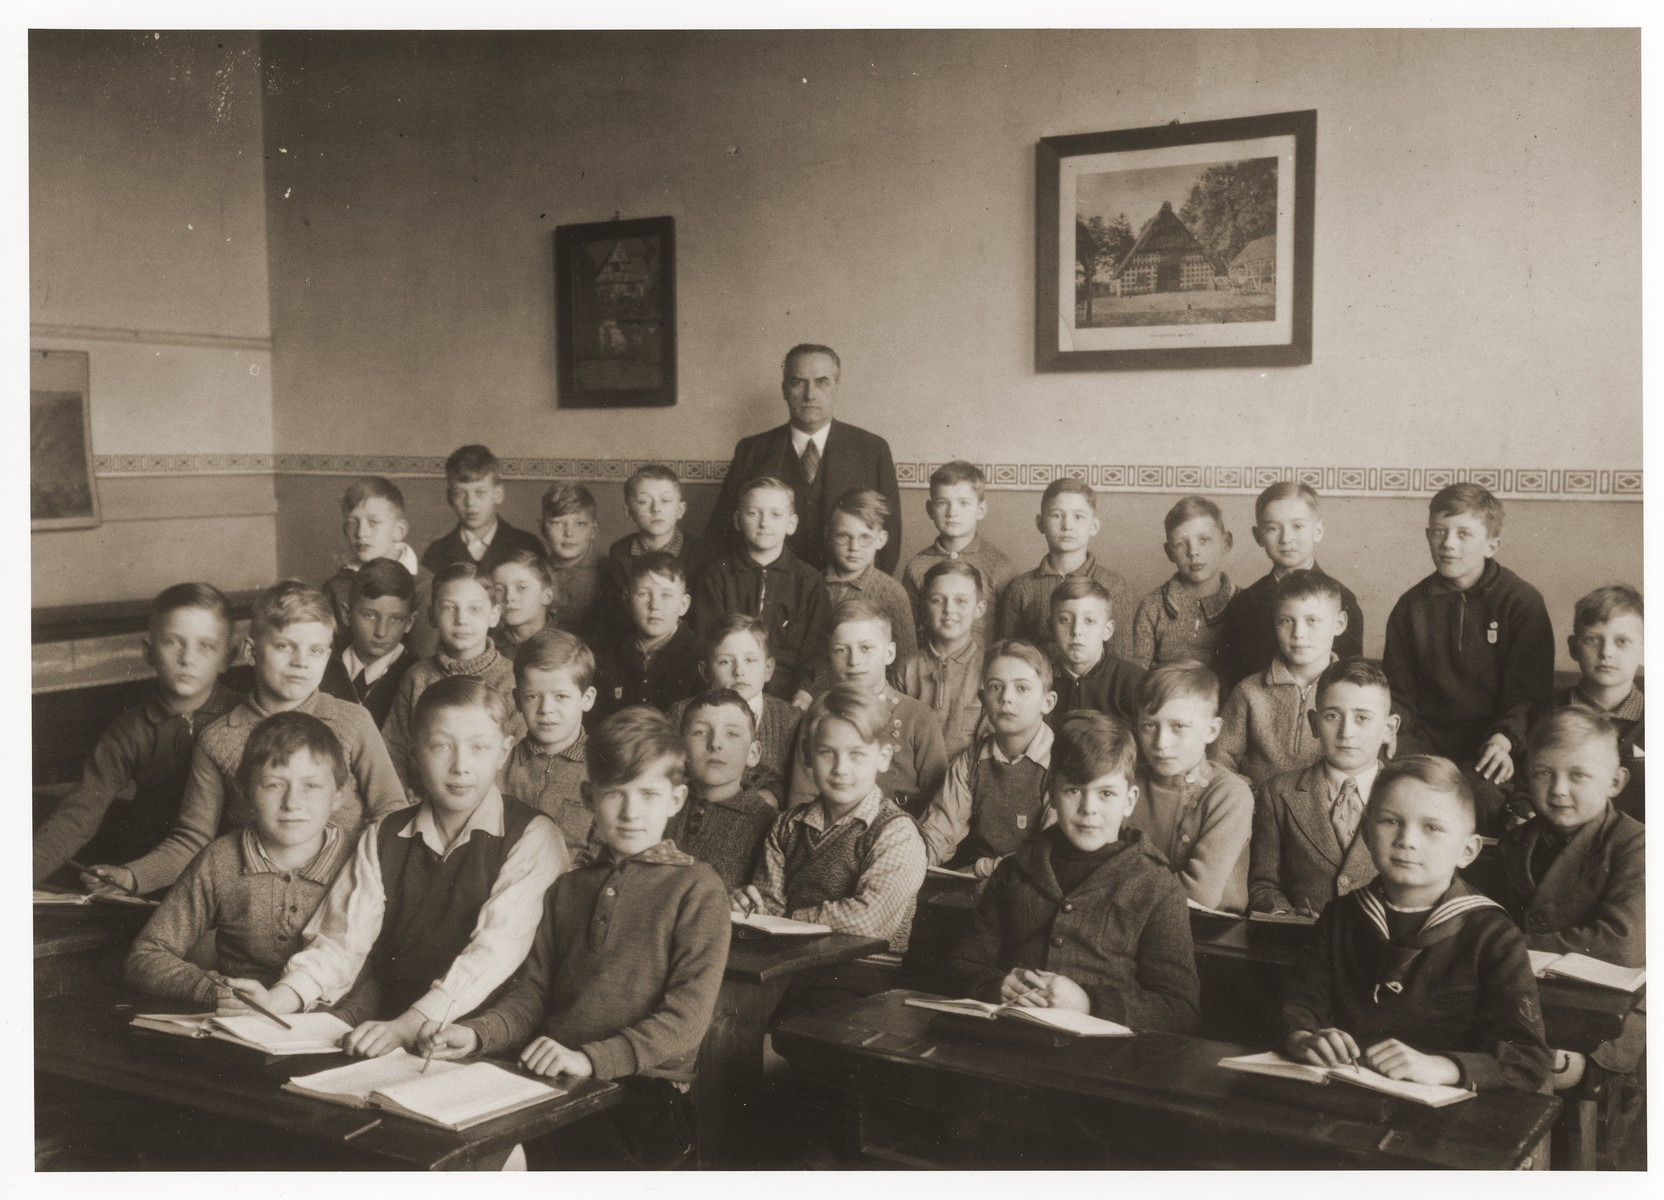 Herbert Goldschmidt sits in his classroom in Michaelschule, where he was the only Jewish child.  Herbert Goldschmidt is pictured in the third row from the front, second from the right.